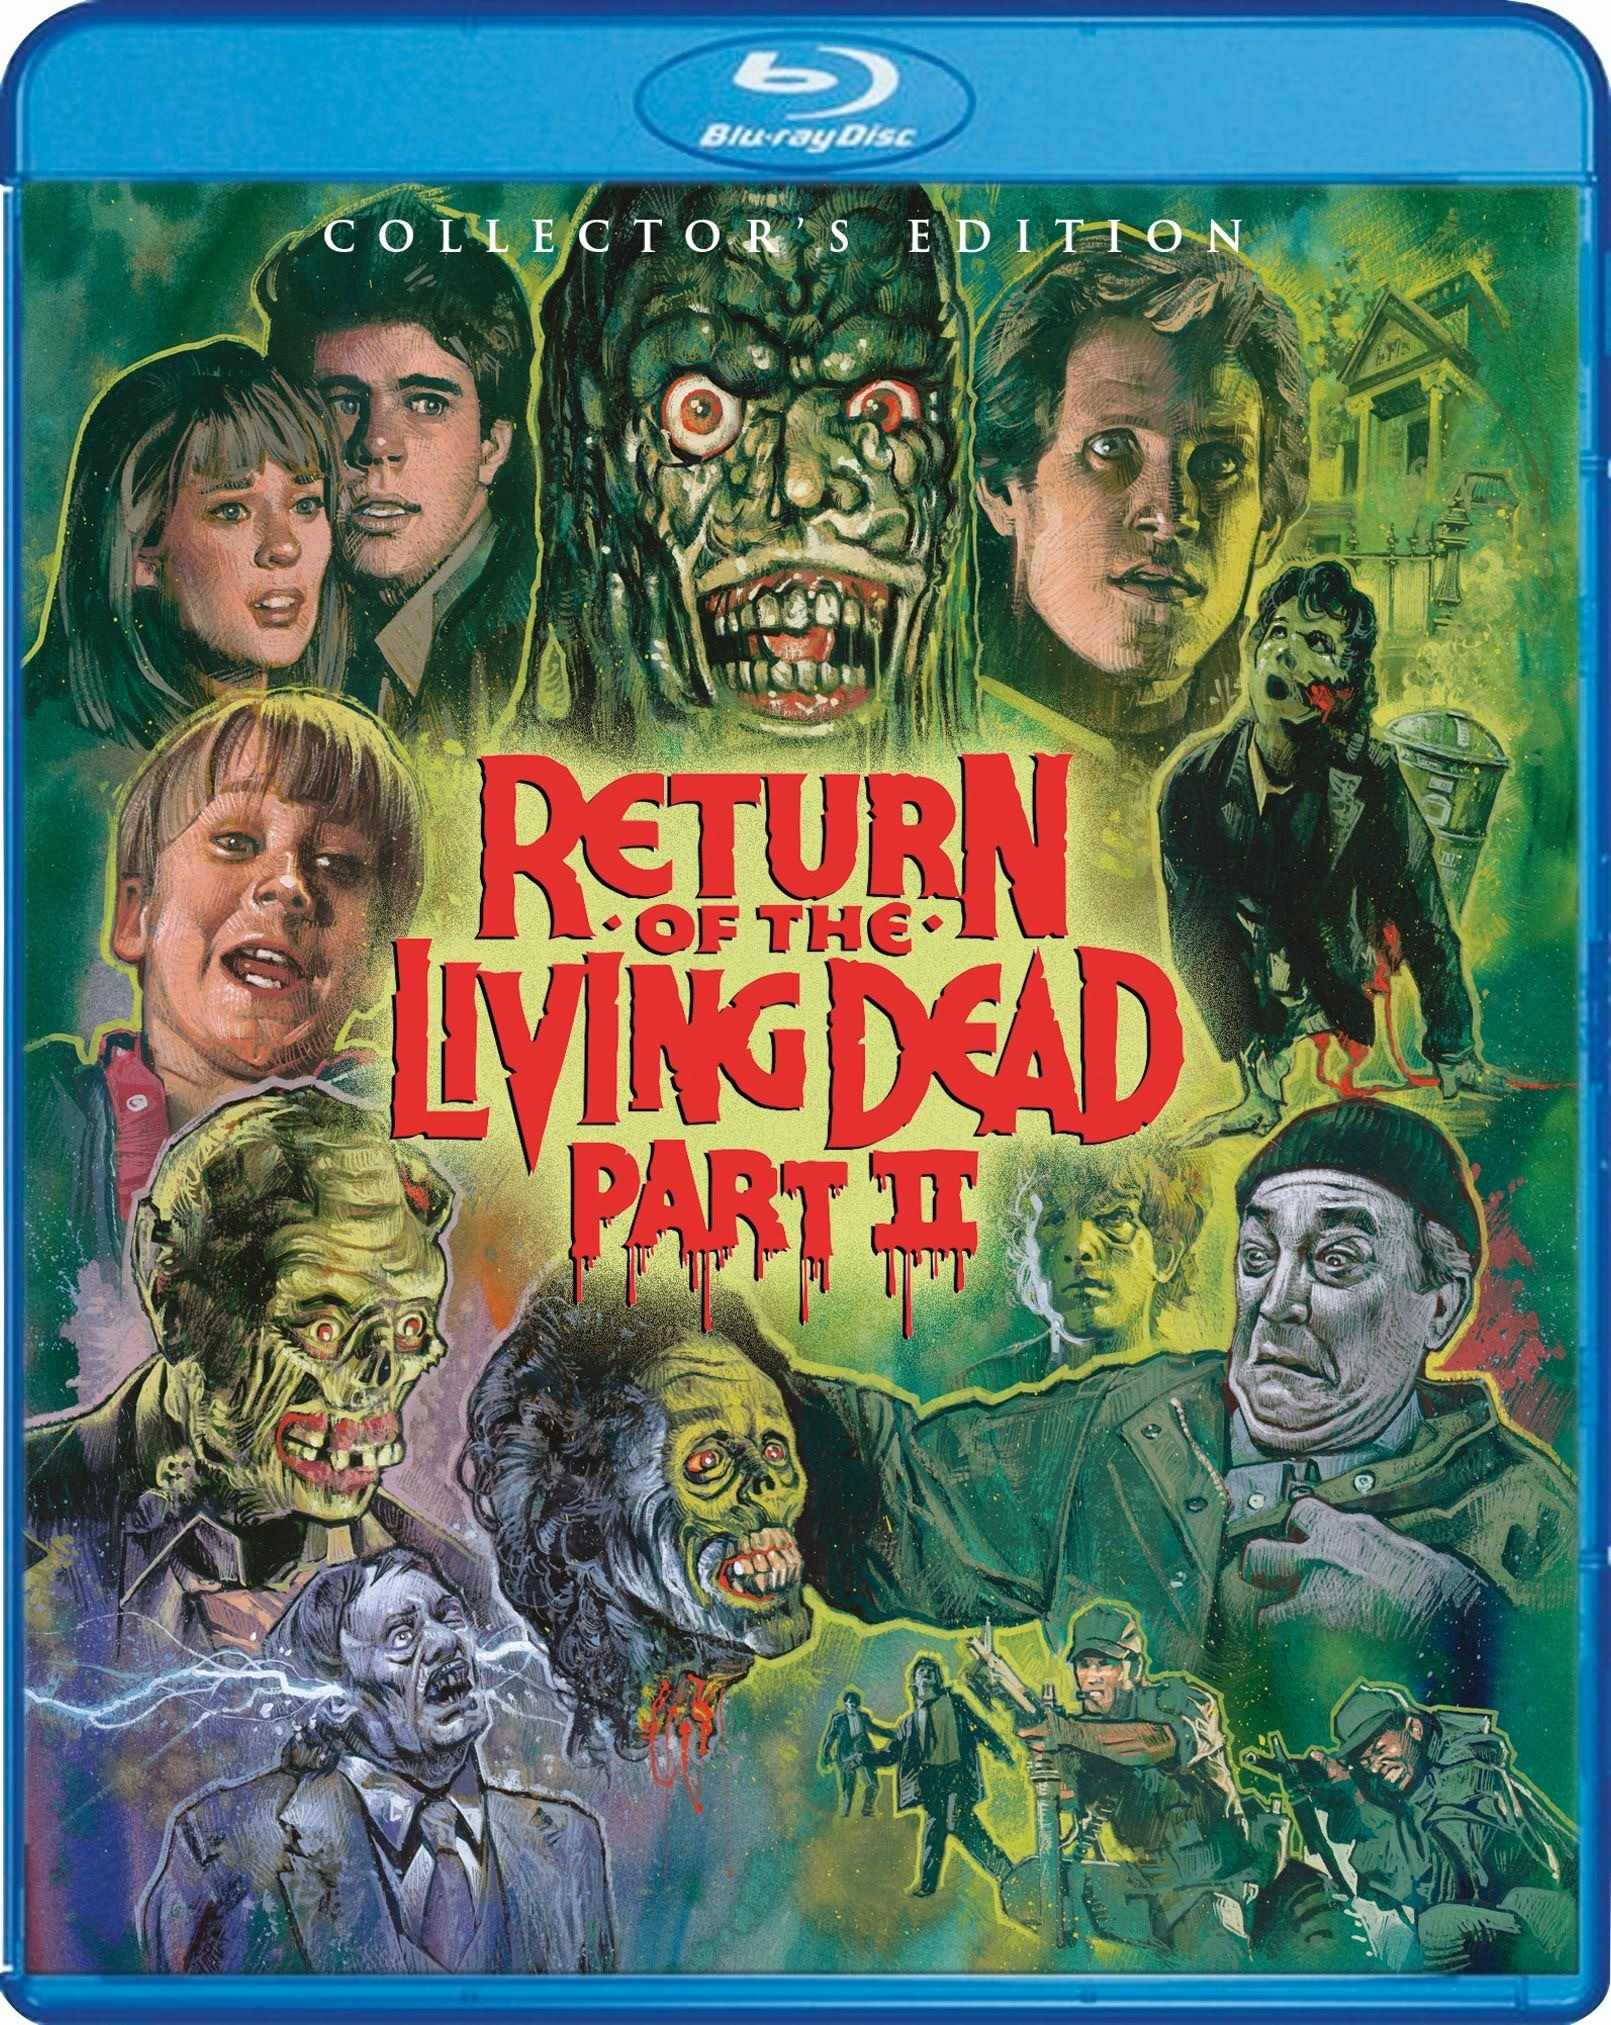 Return of the Living Dead Part II (Collectors Edition)(1988) Blu-ray